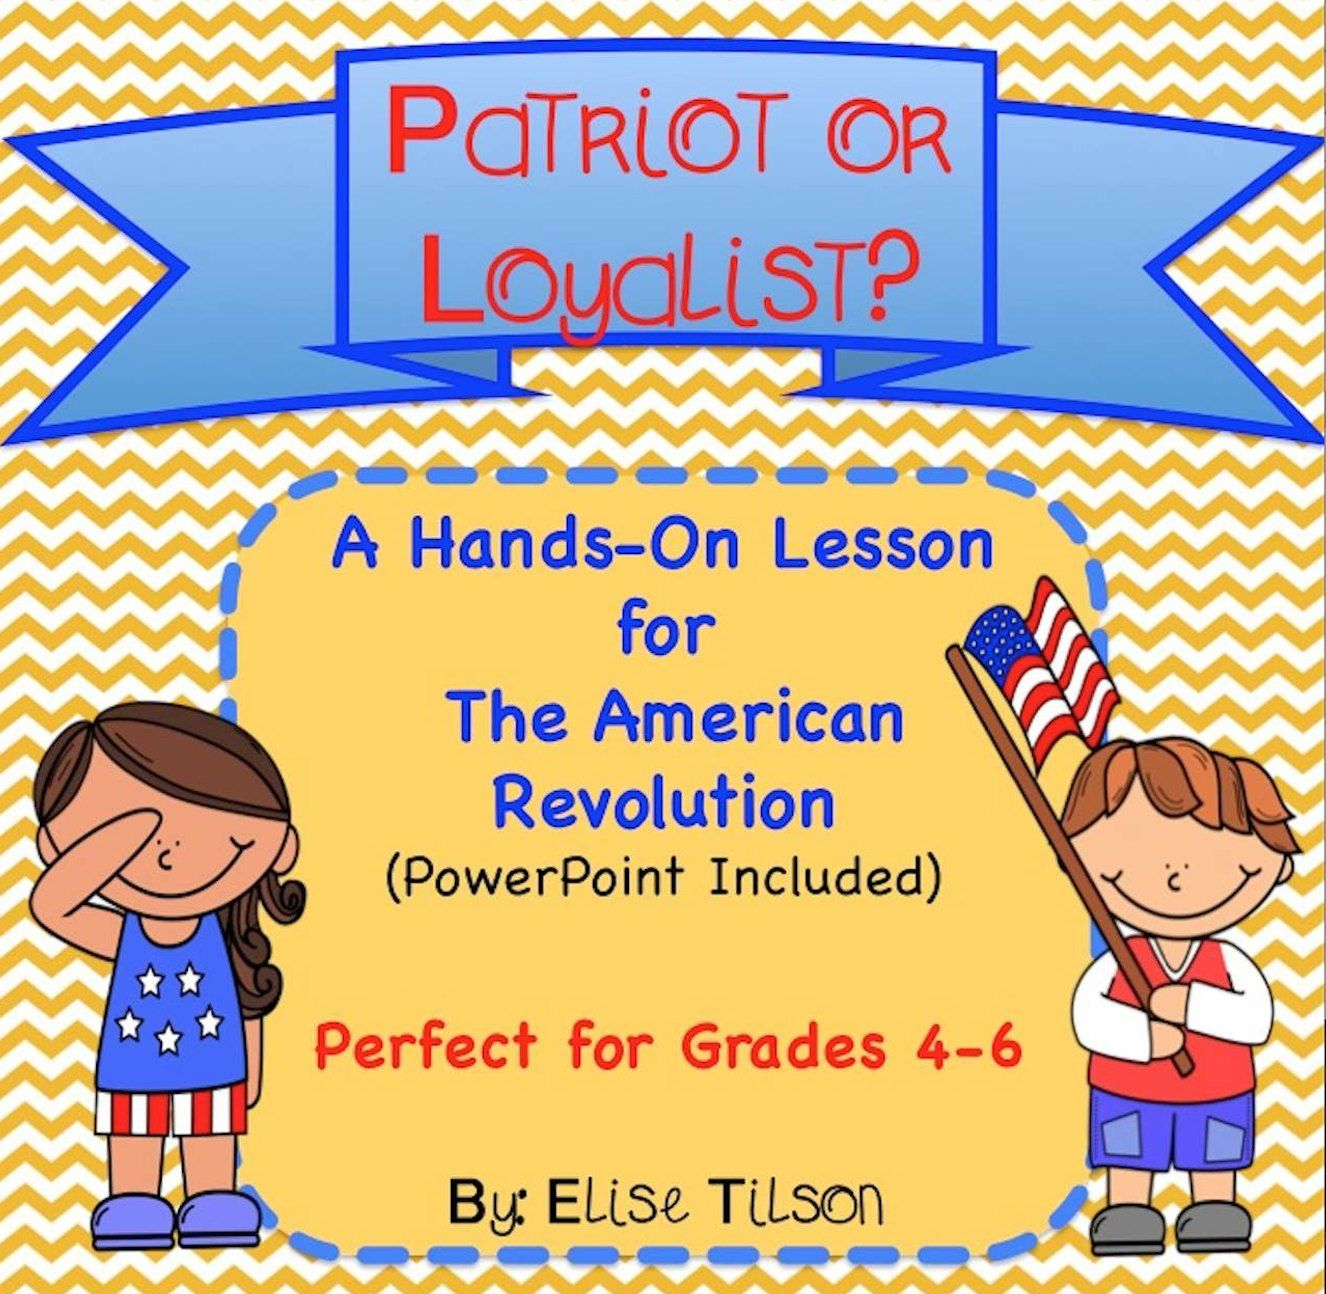 Fun Creative Lesson Plan To Teach The Difference Between The Two Sides Of The Revo Social Studies Elementary Interactive Lesson Plans Common Core Lesson Plans